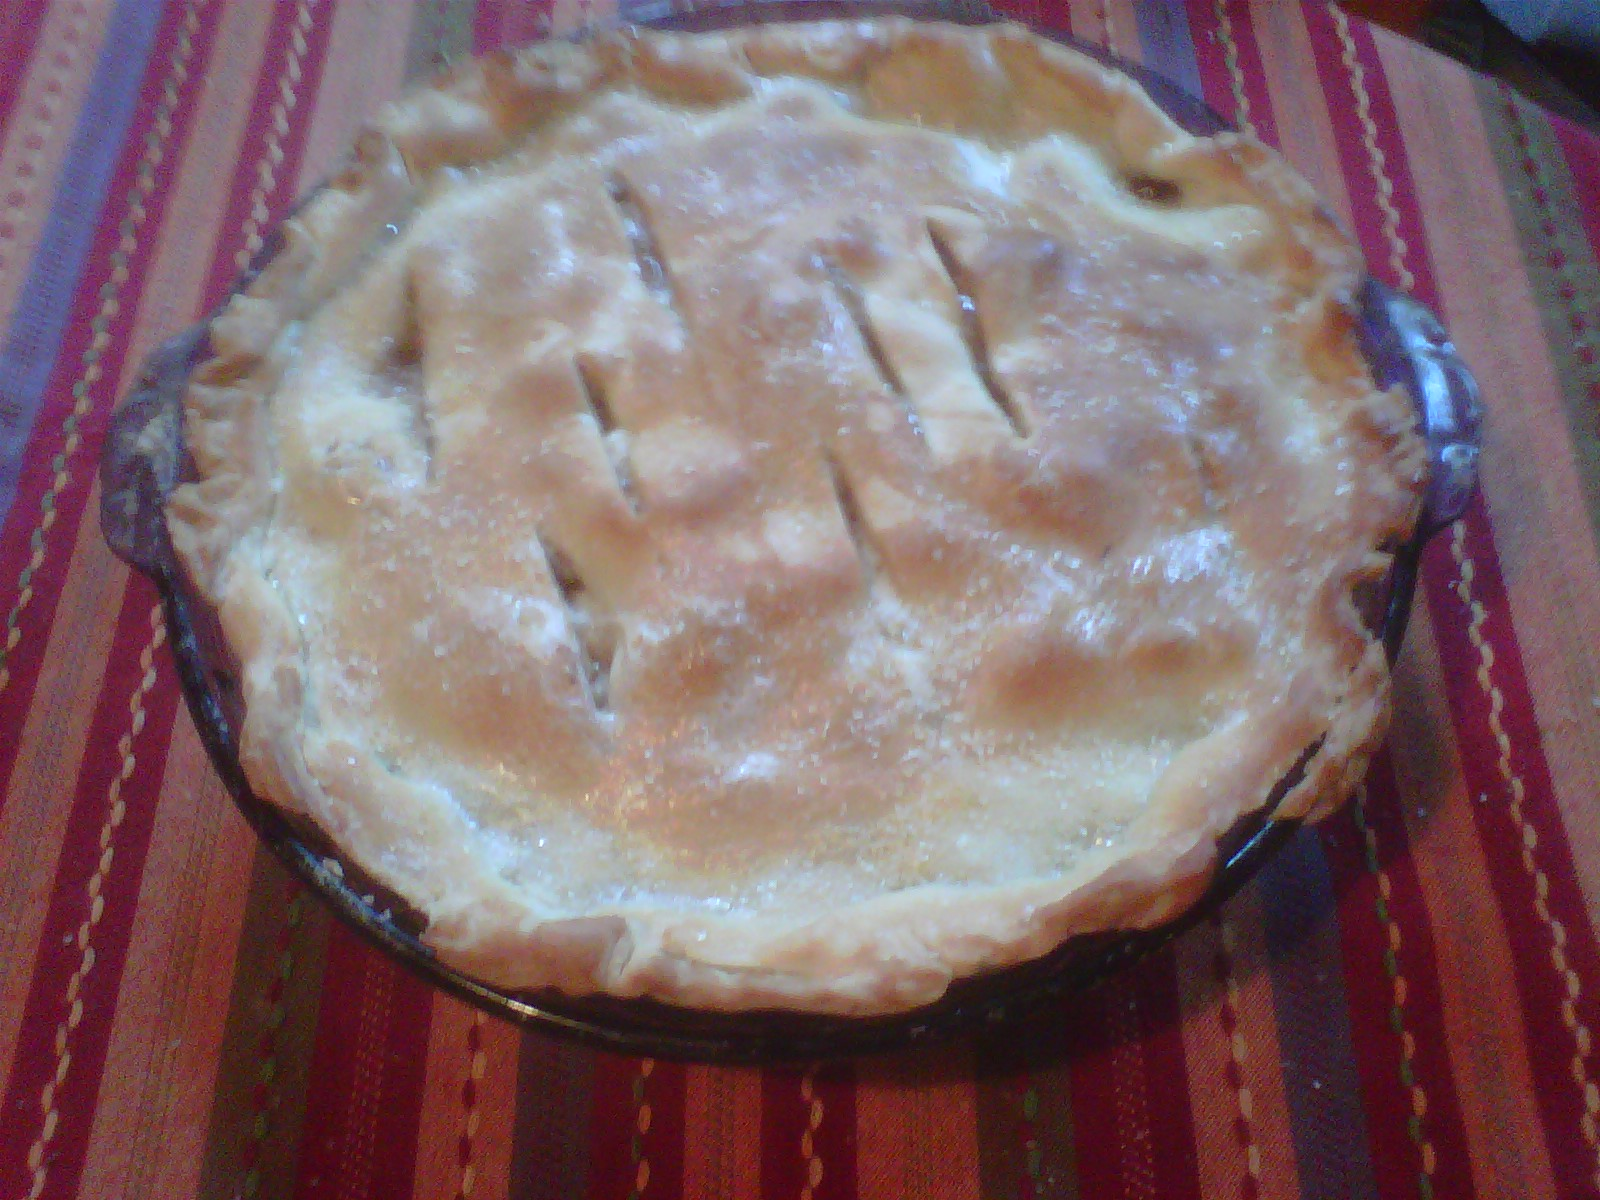 My Apple Pie Right Out of the Oven